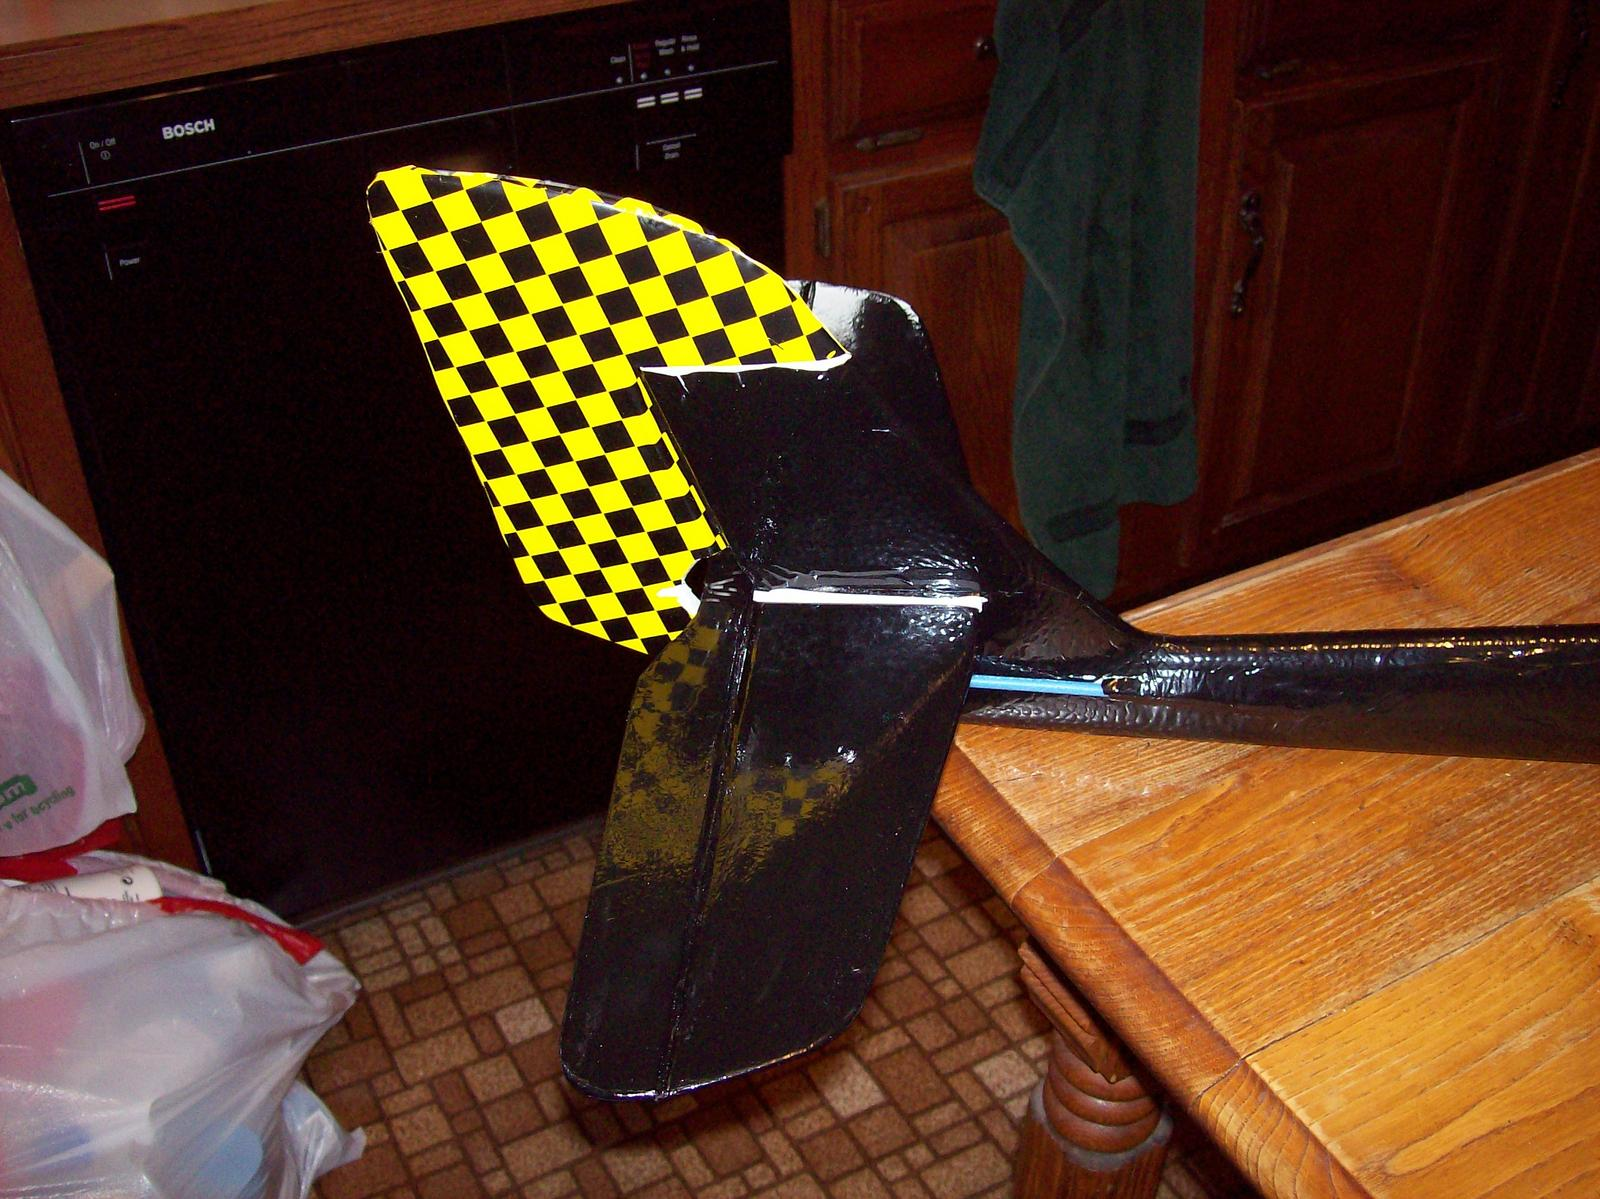 Black and Yellow checks for rudder, black Econocoat for vertical and hoizontal stabs, and tail.